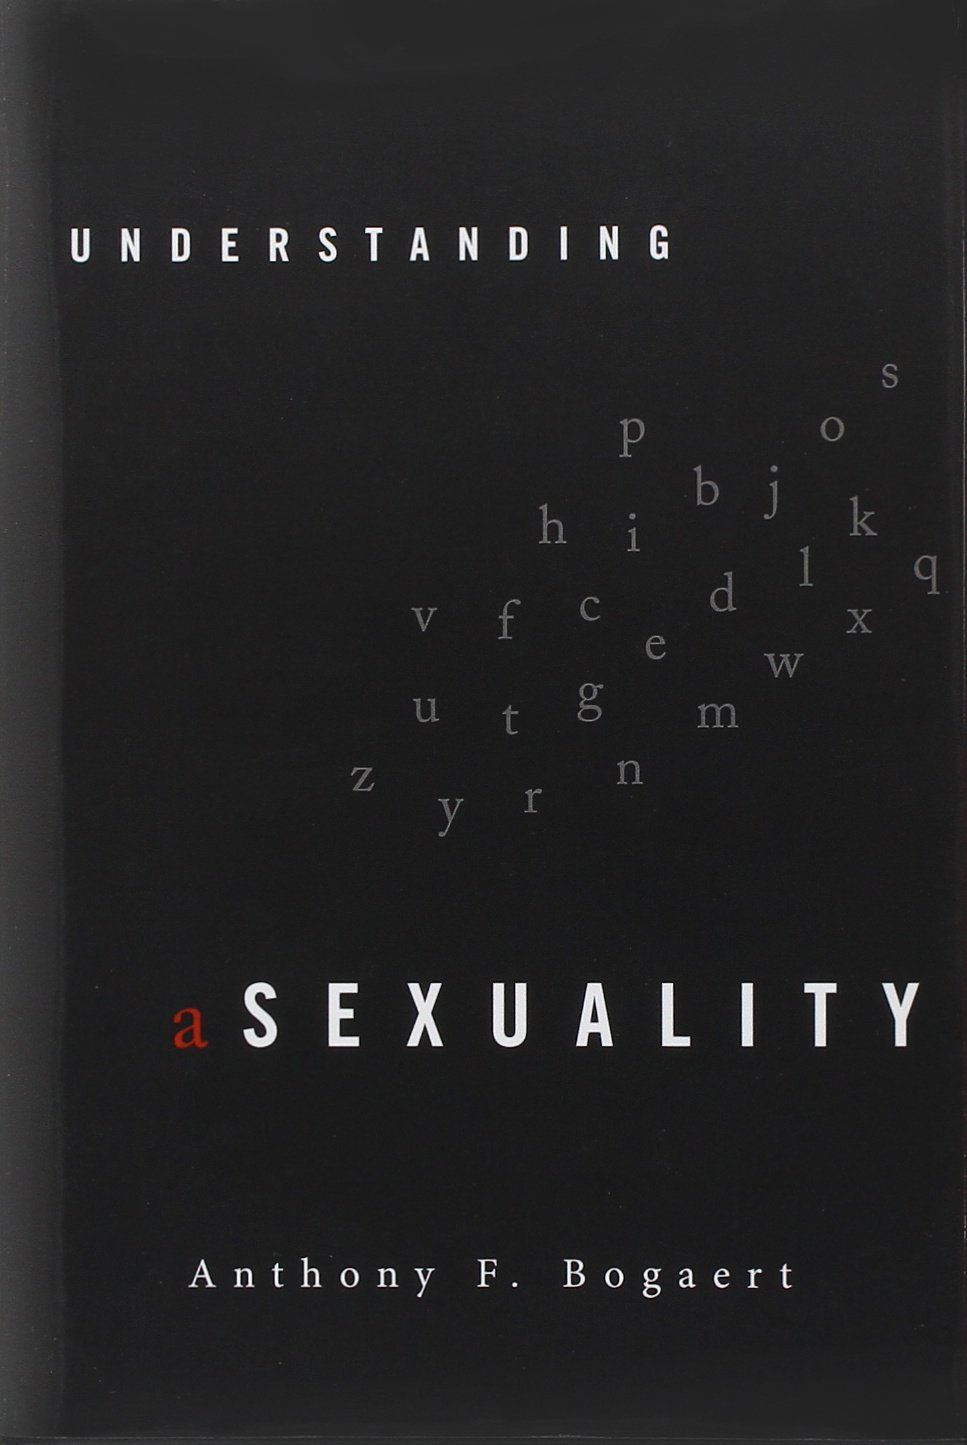 Anthony f bogaert understanding asexuality